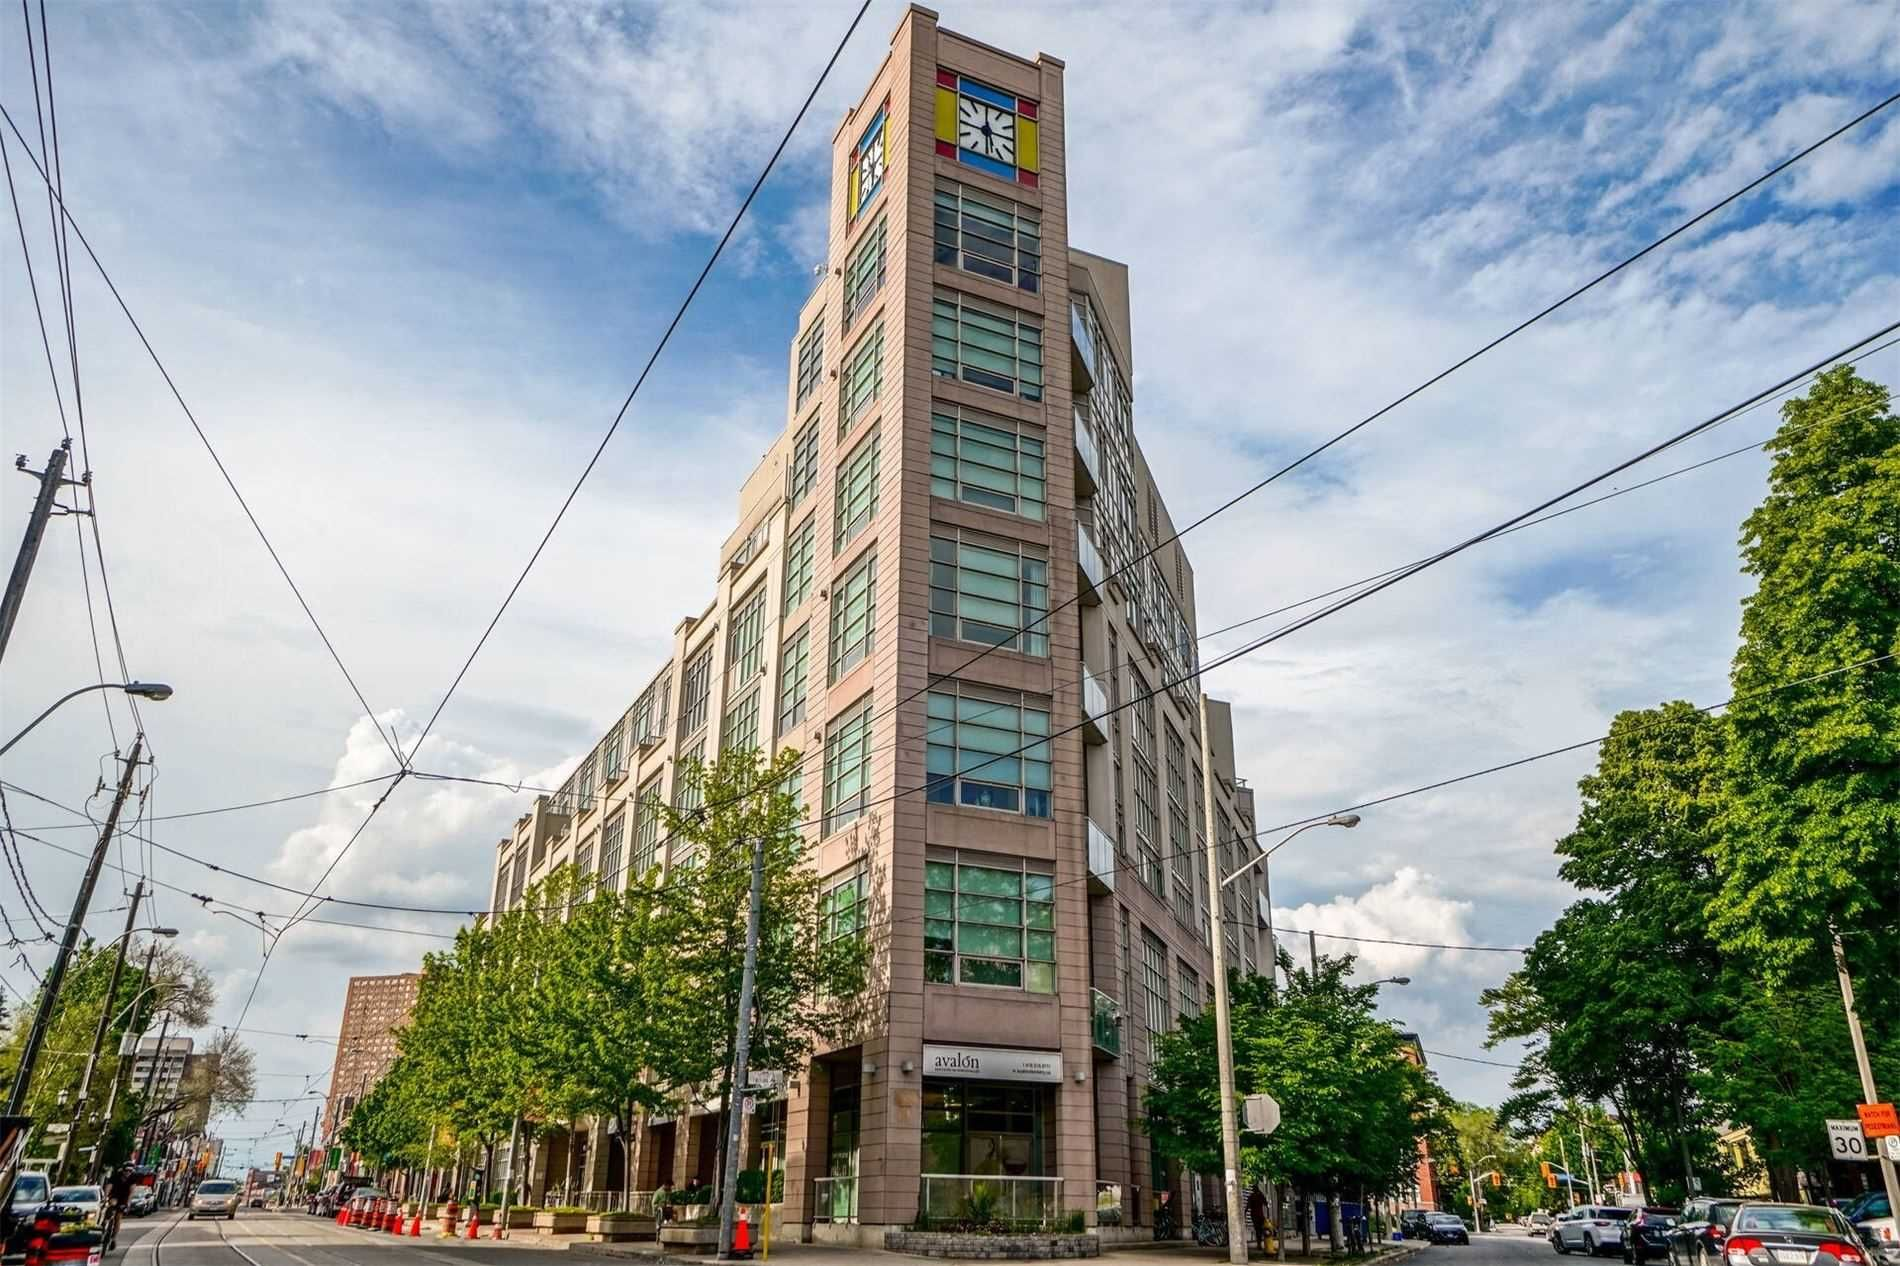 437 Roncesvalles Ave, unit 513 for sale in Toronto - image #1